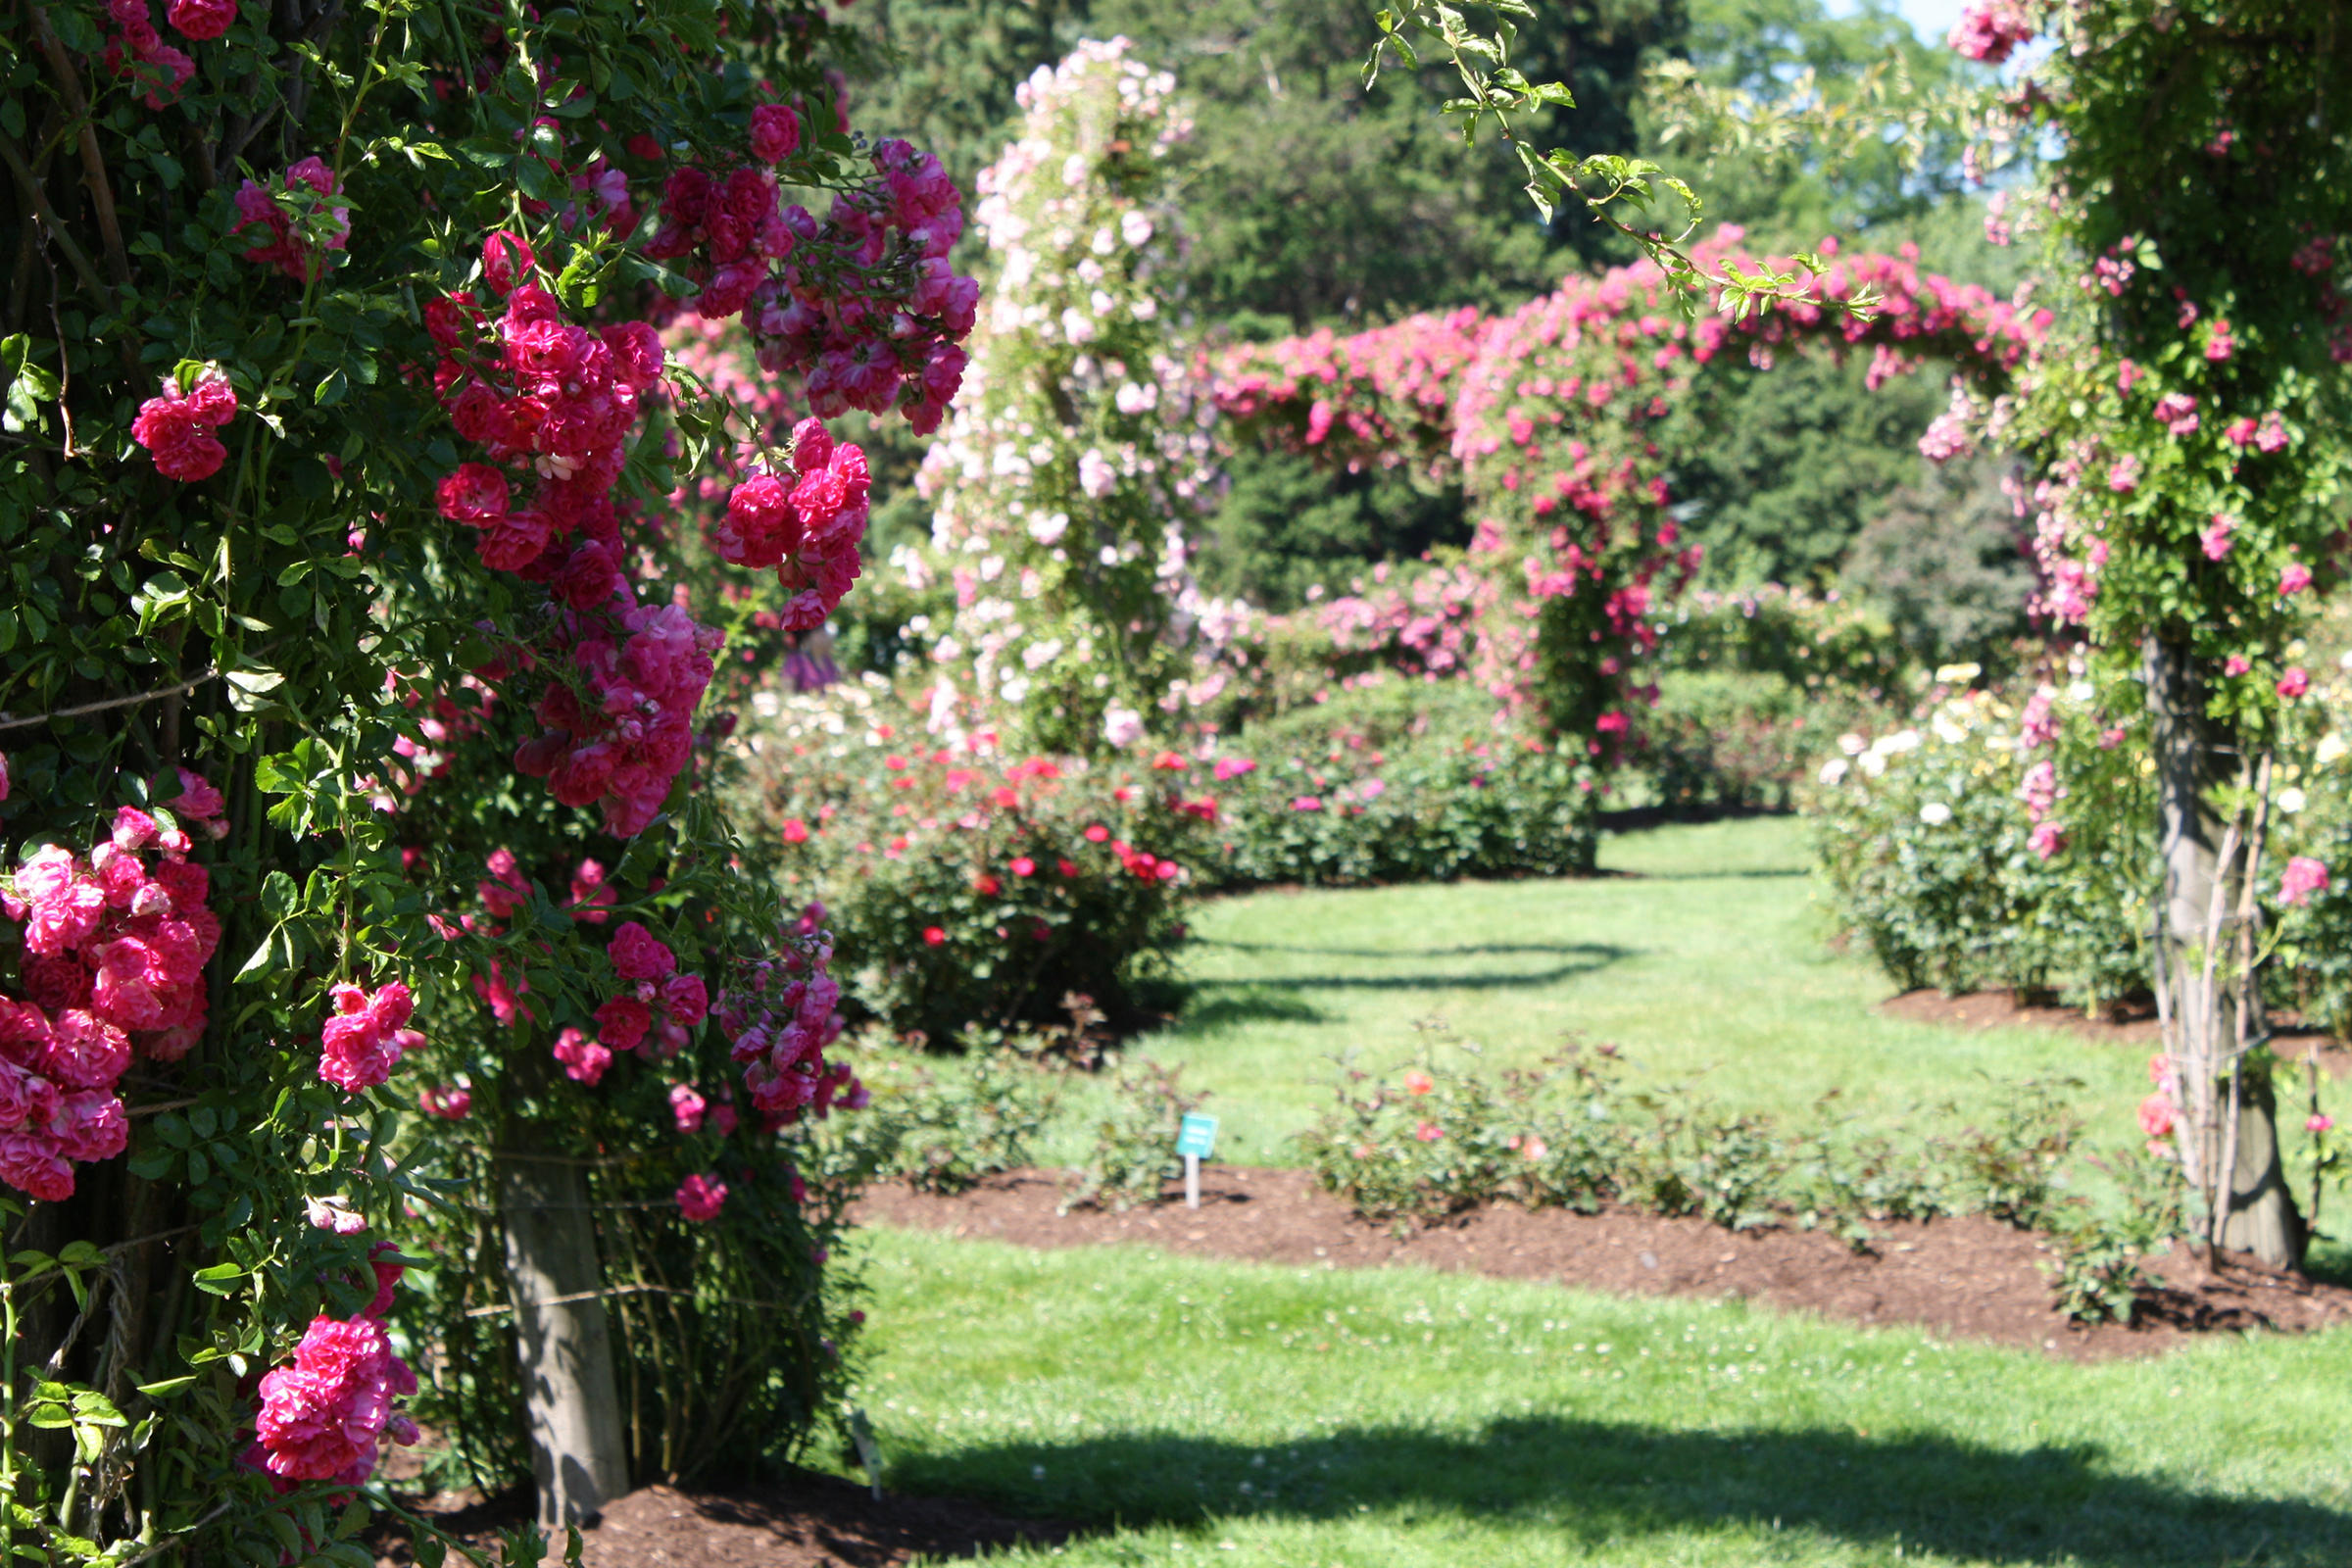 Climbing Rose Arches At The Rose Garden At Elizabeth Park In Hartford.